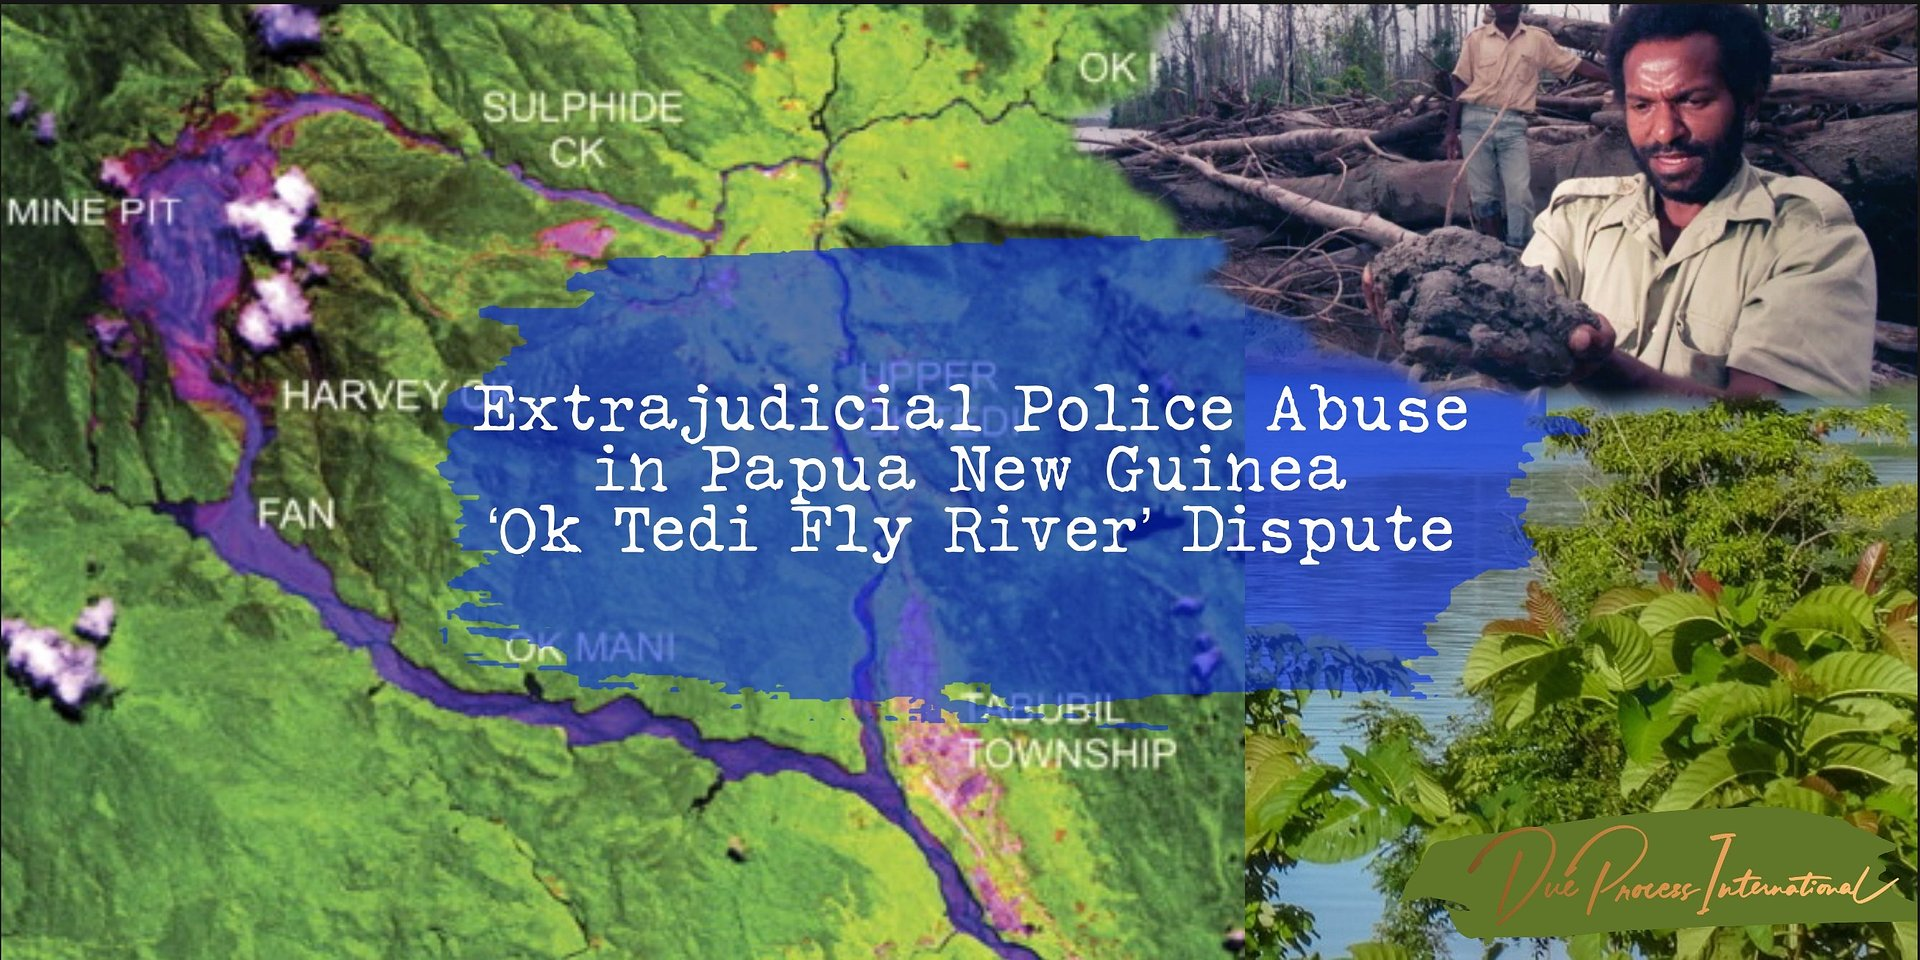 Due Process International calls out extrajudicial police abuses in PNG Ok Tedi Fly River Dispute